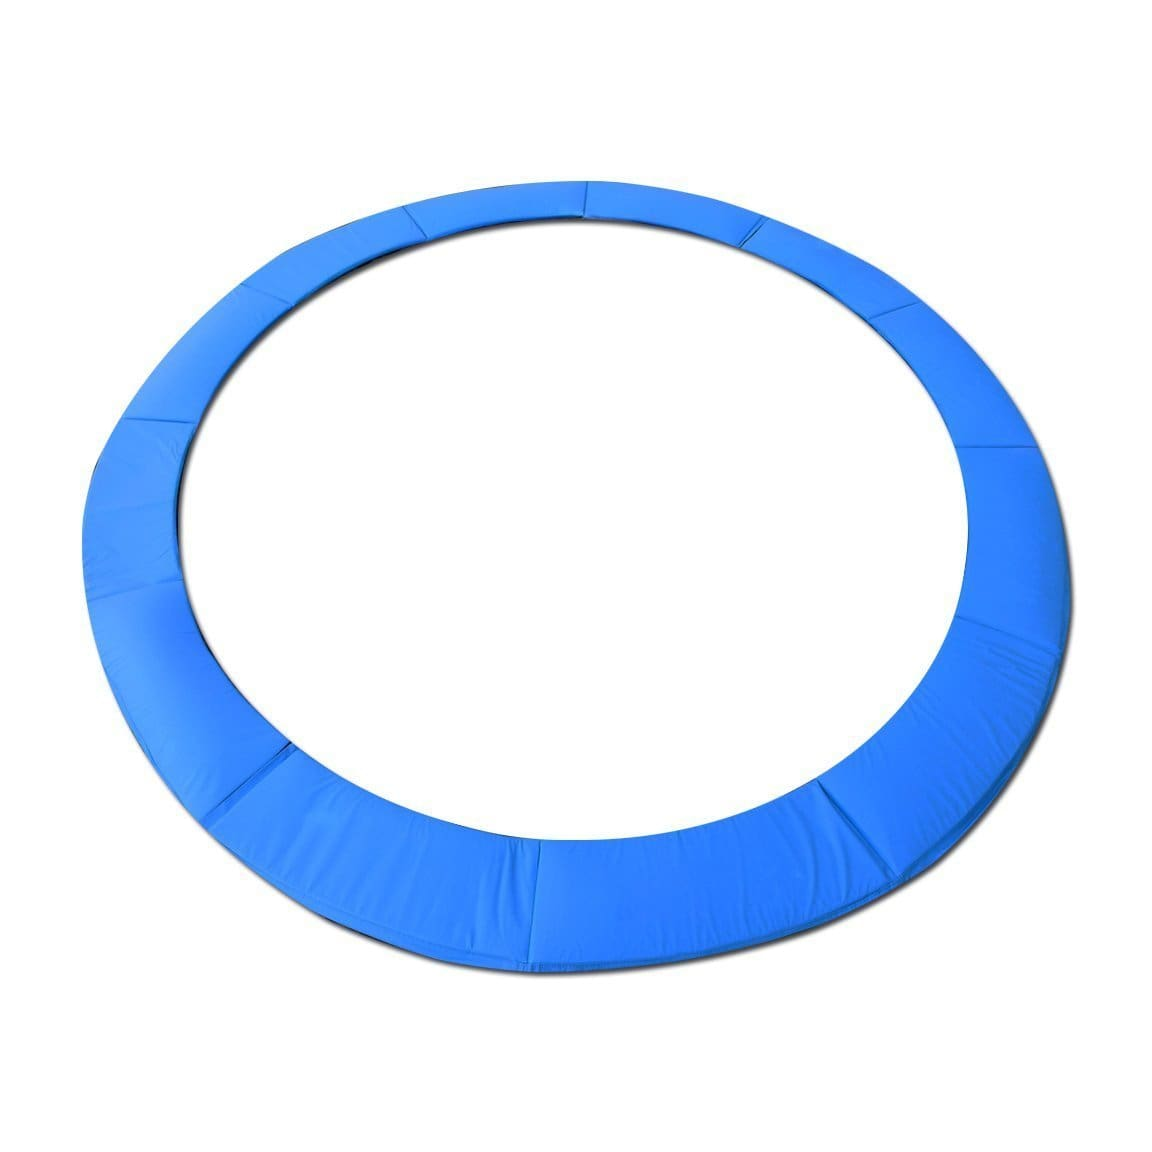 Skybound 12 Foot Blue Trampoline Pad (Fits Up To 5.5 Inch Springs) - Standard - Trampoline Replacements